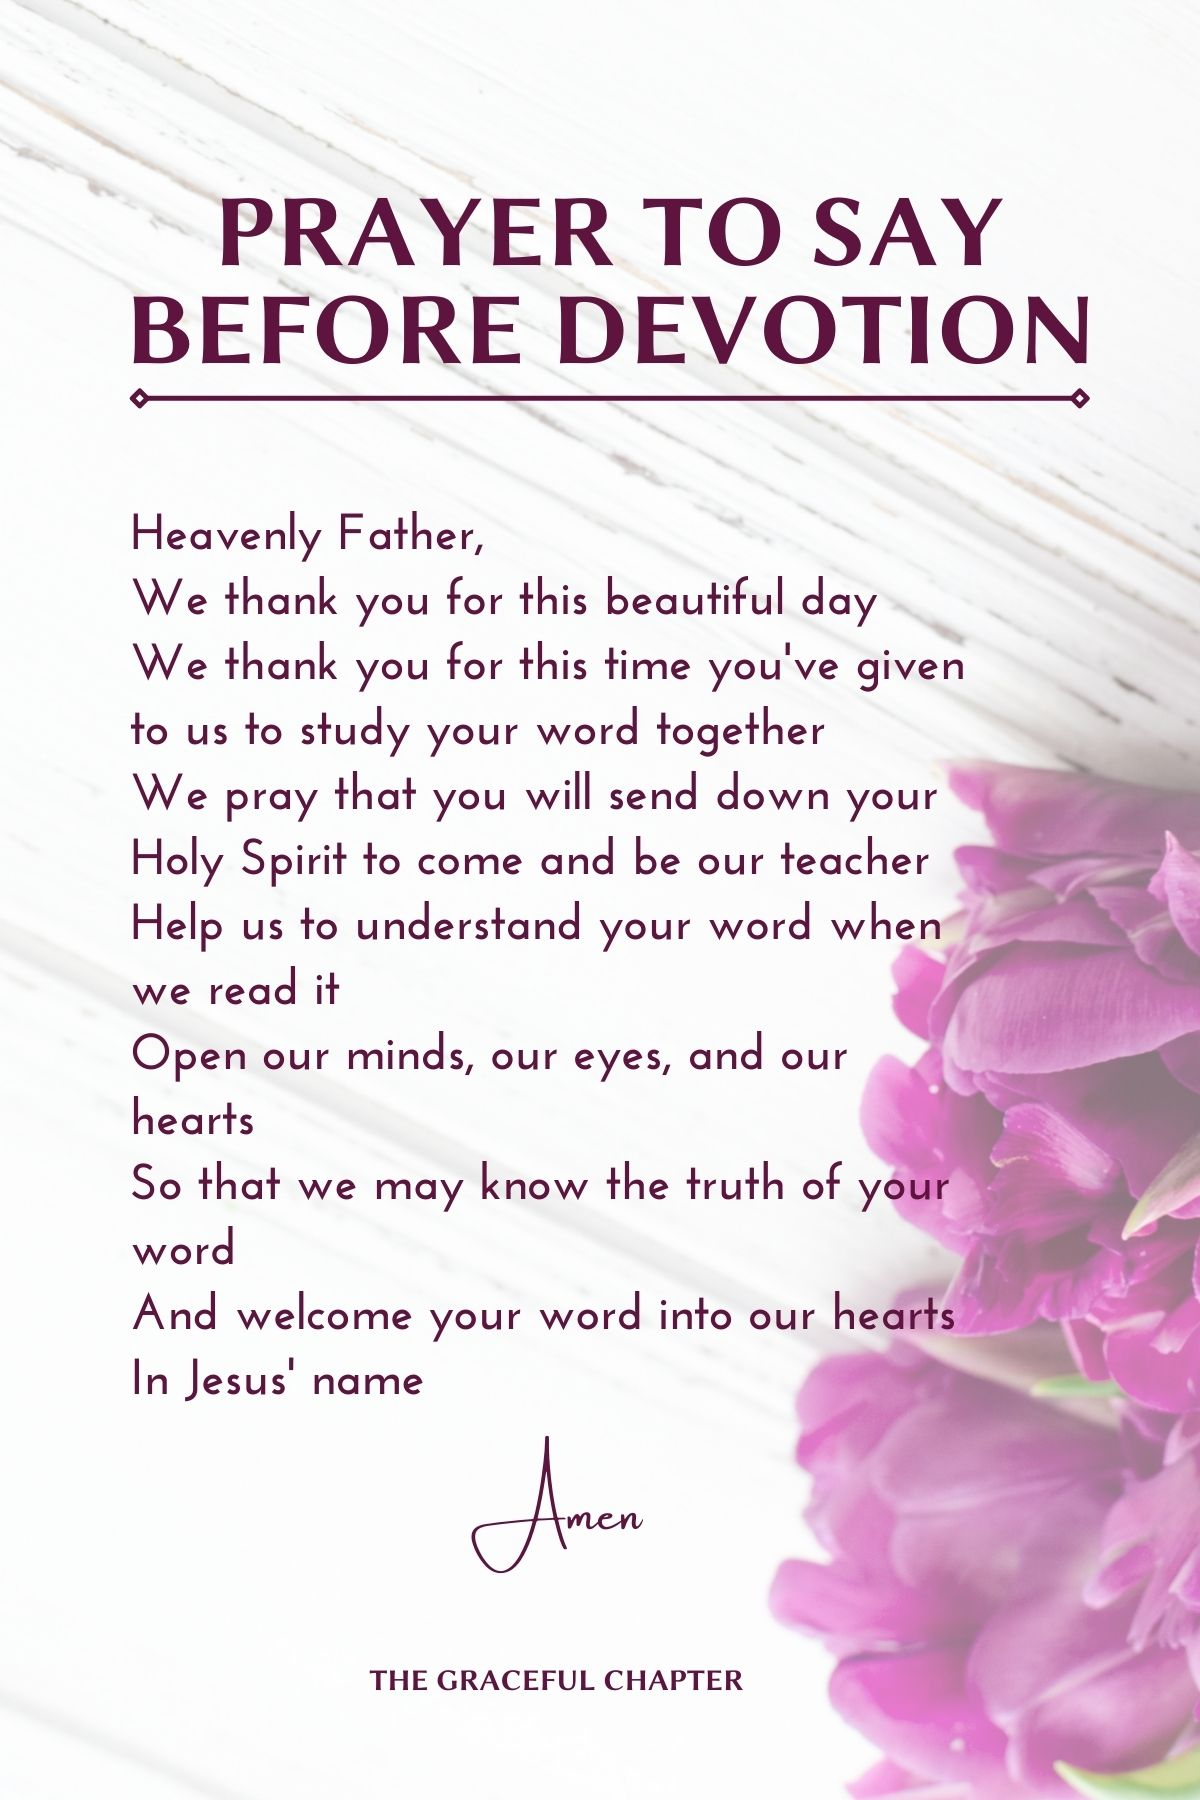 prayer to say before devotion